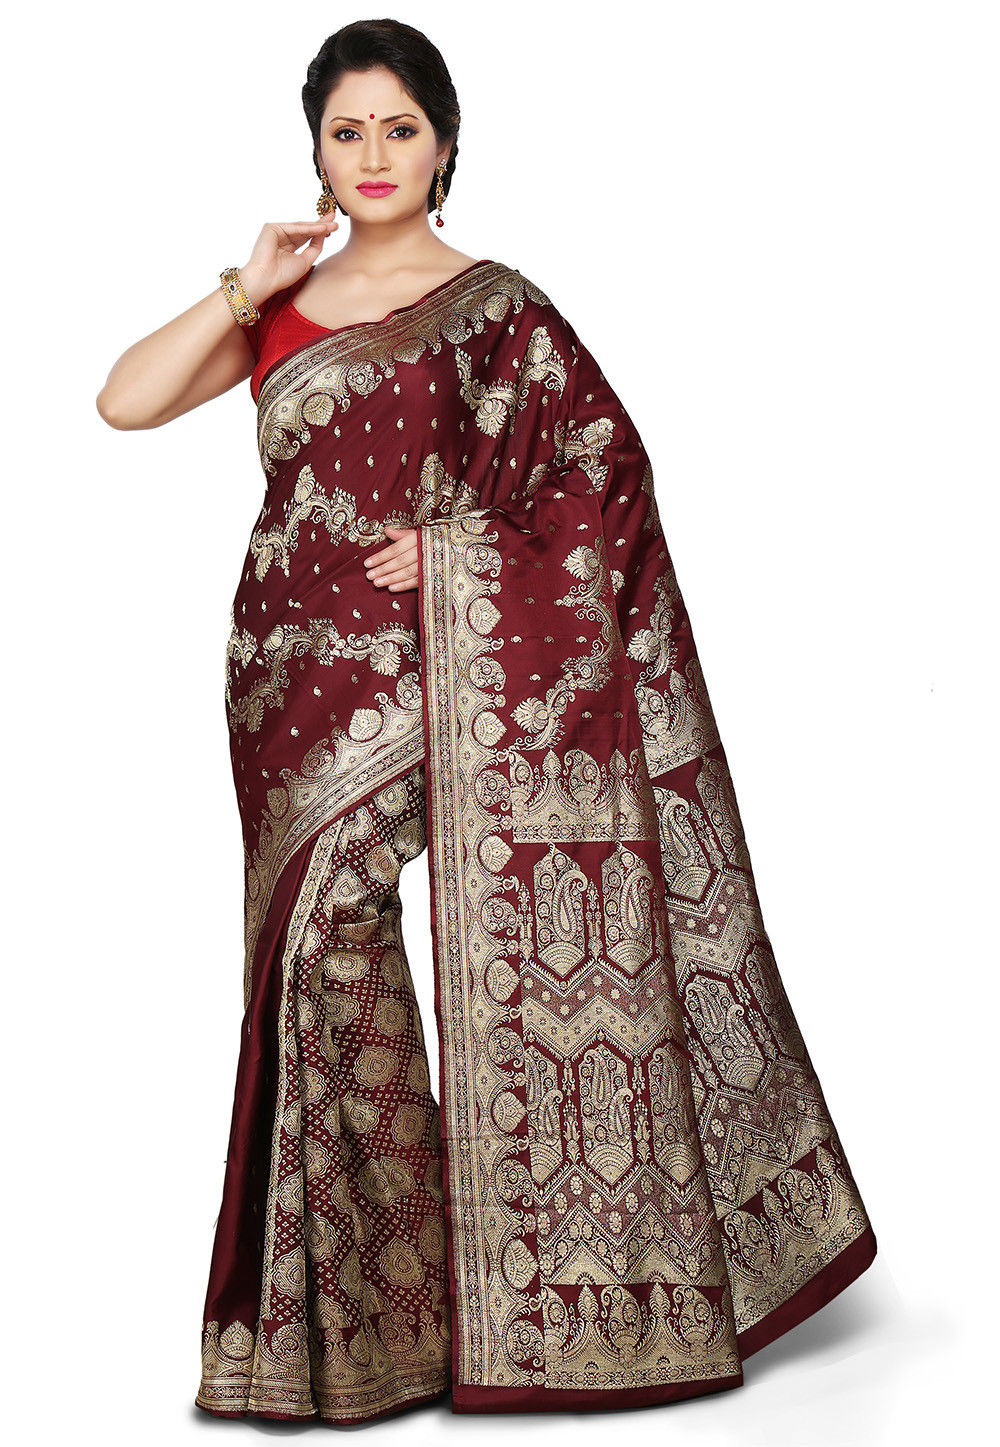 Banarasi Pure Silk Handloom Saree in Maroon